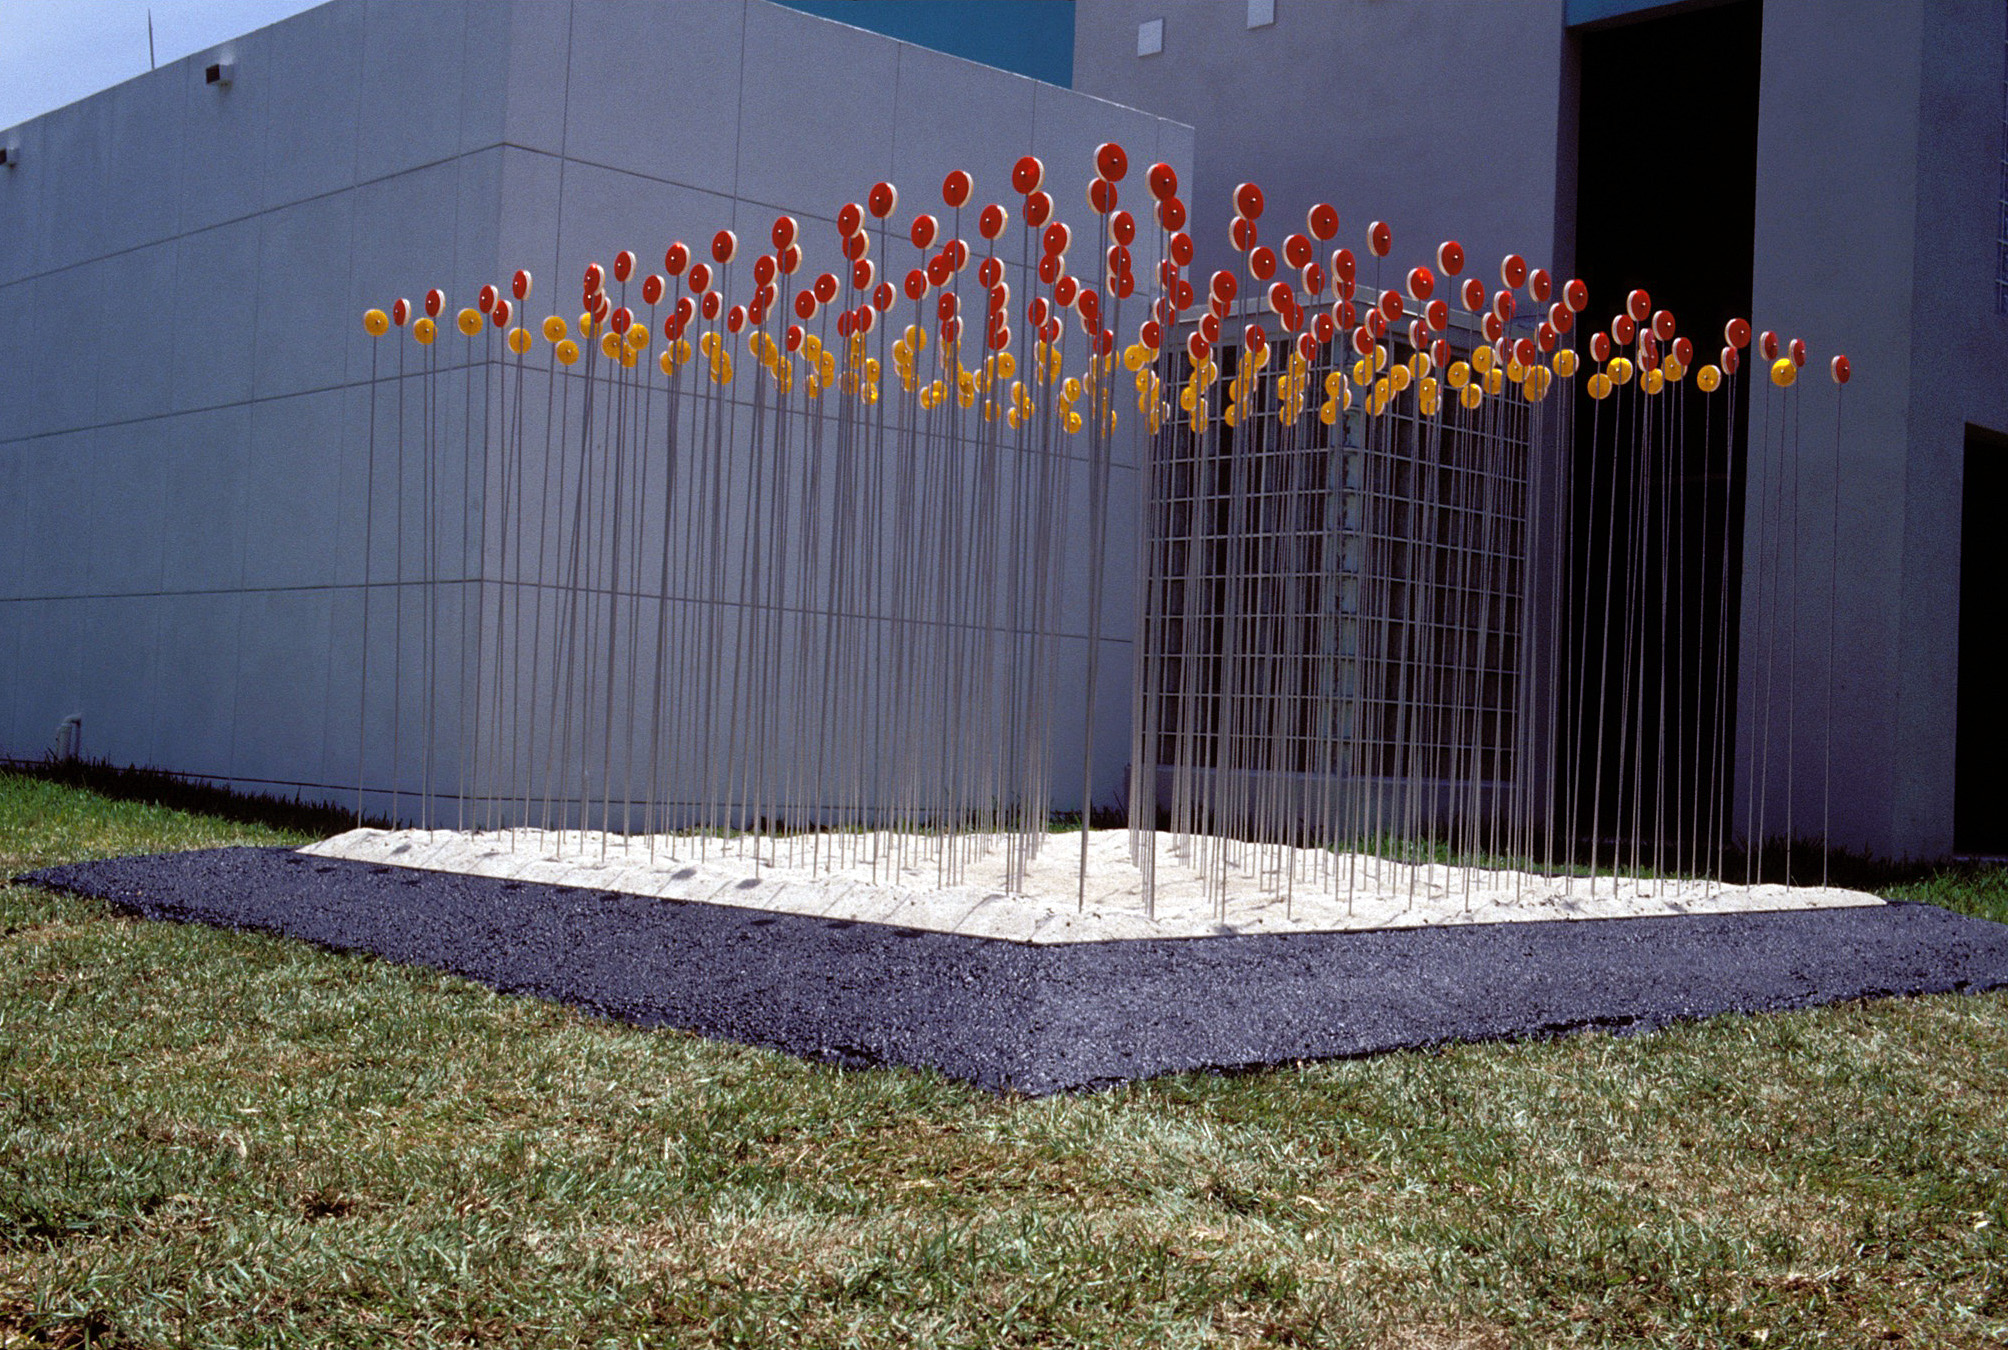 Call for Makers: Moving Landscapes, an Outdoor Sculpture Exhibit